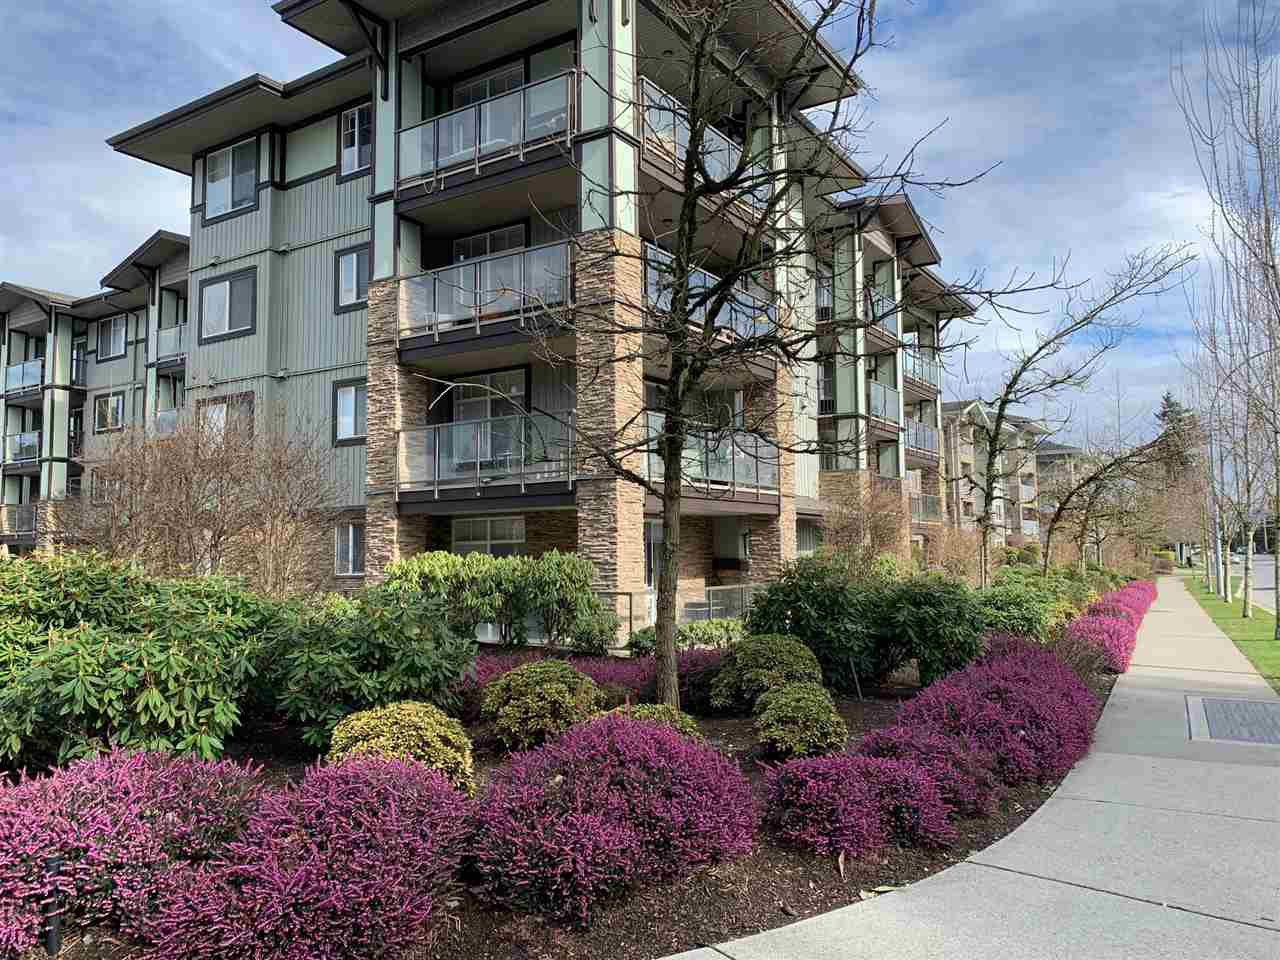 """Main Photo: 111 2038 SANDALWOOD Crescent in Abbotsford: Central Abbotsford Condo for sale in """"THE ELEMENT"""" : MLS®# R2443524"""